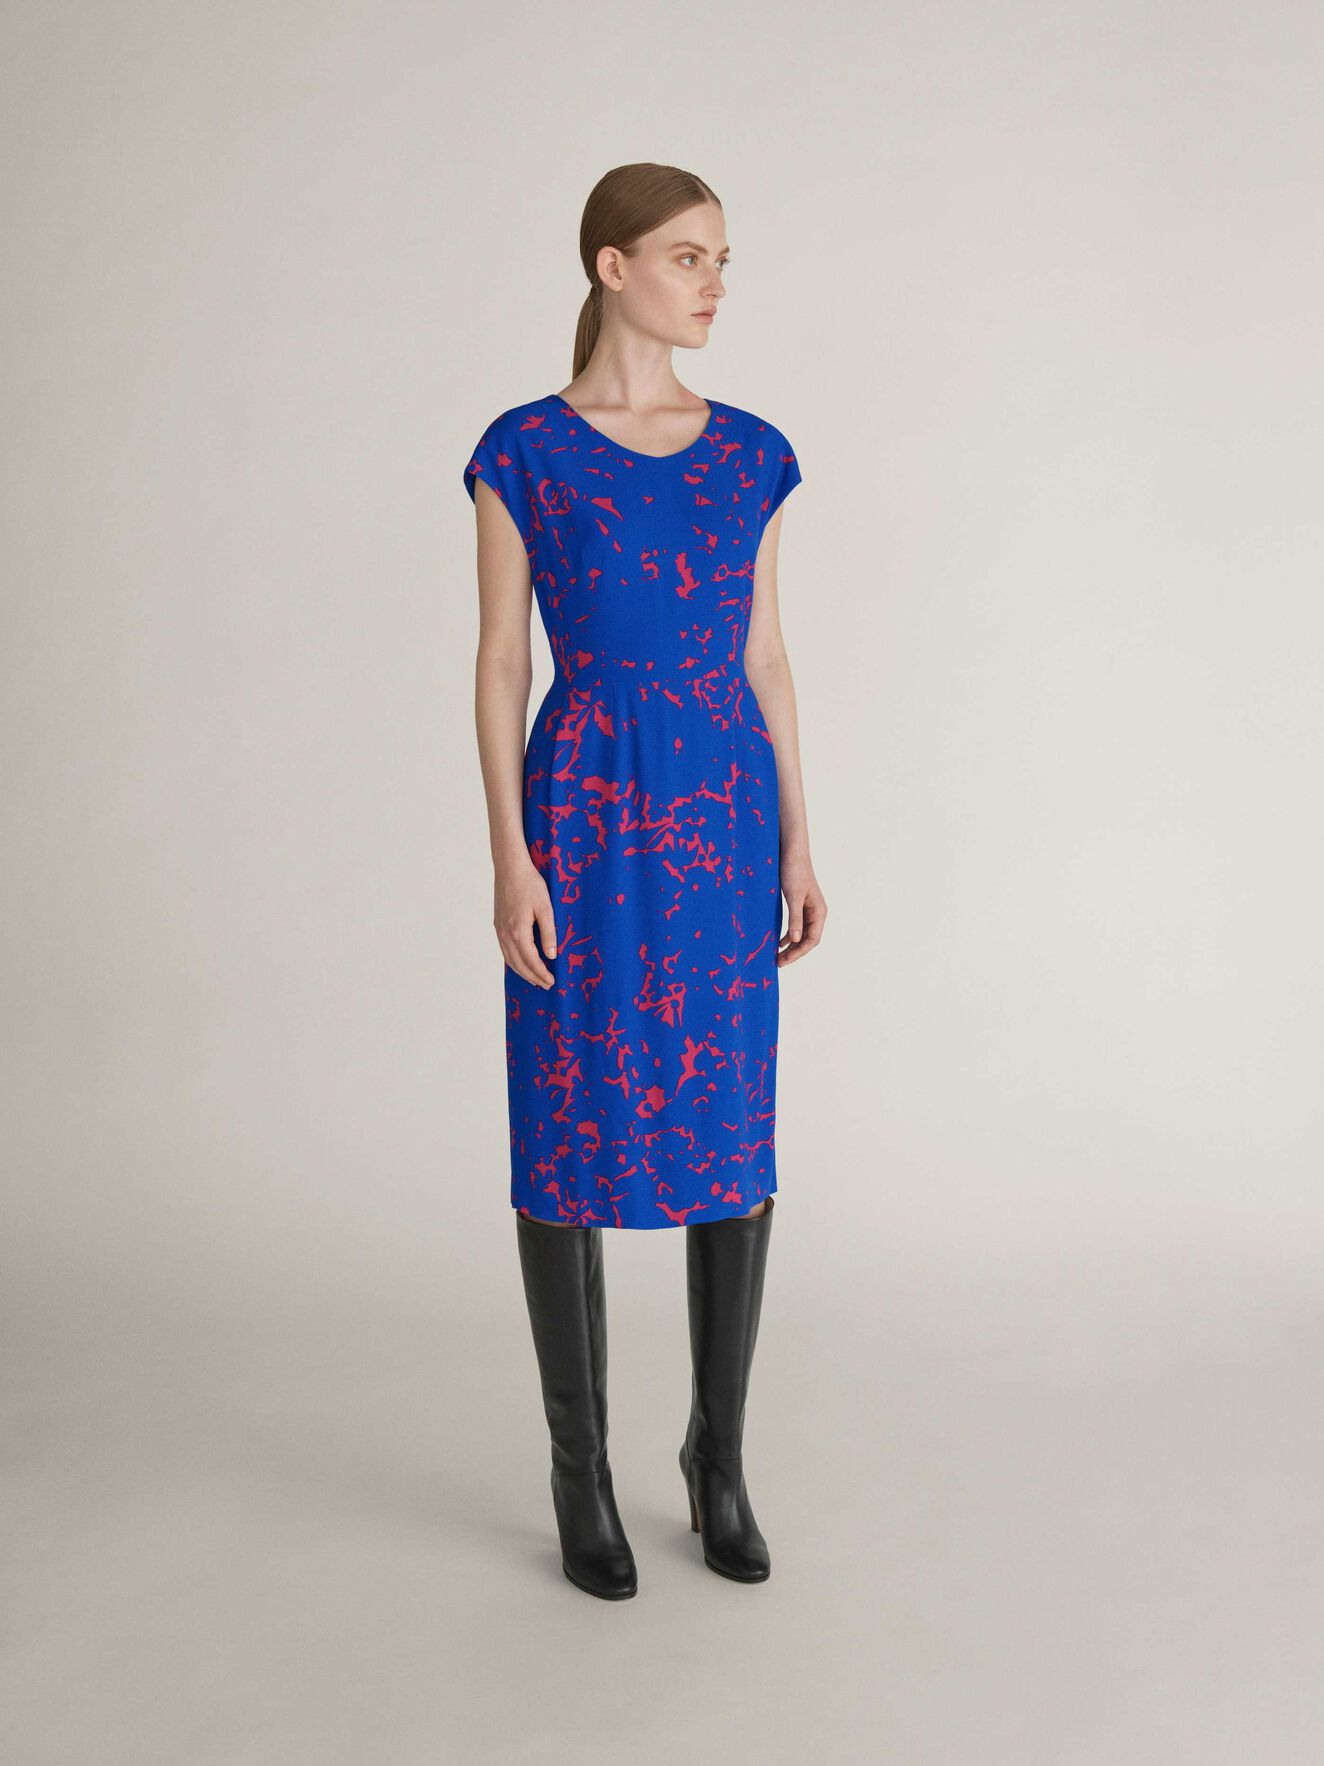 Cady P Dress in ARTWORK from Tiger of Sweden